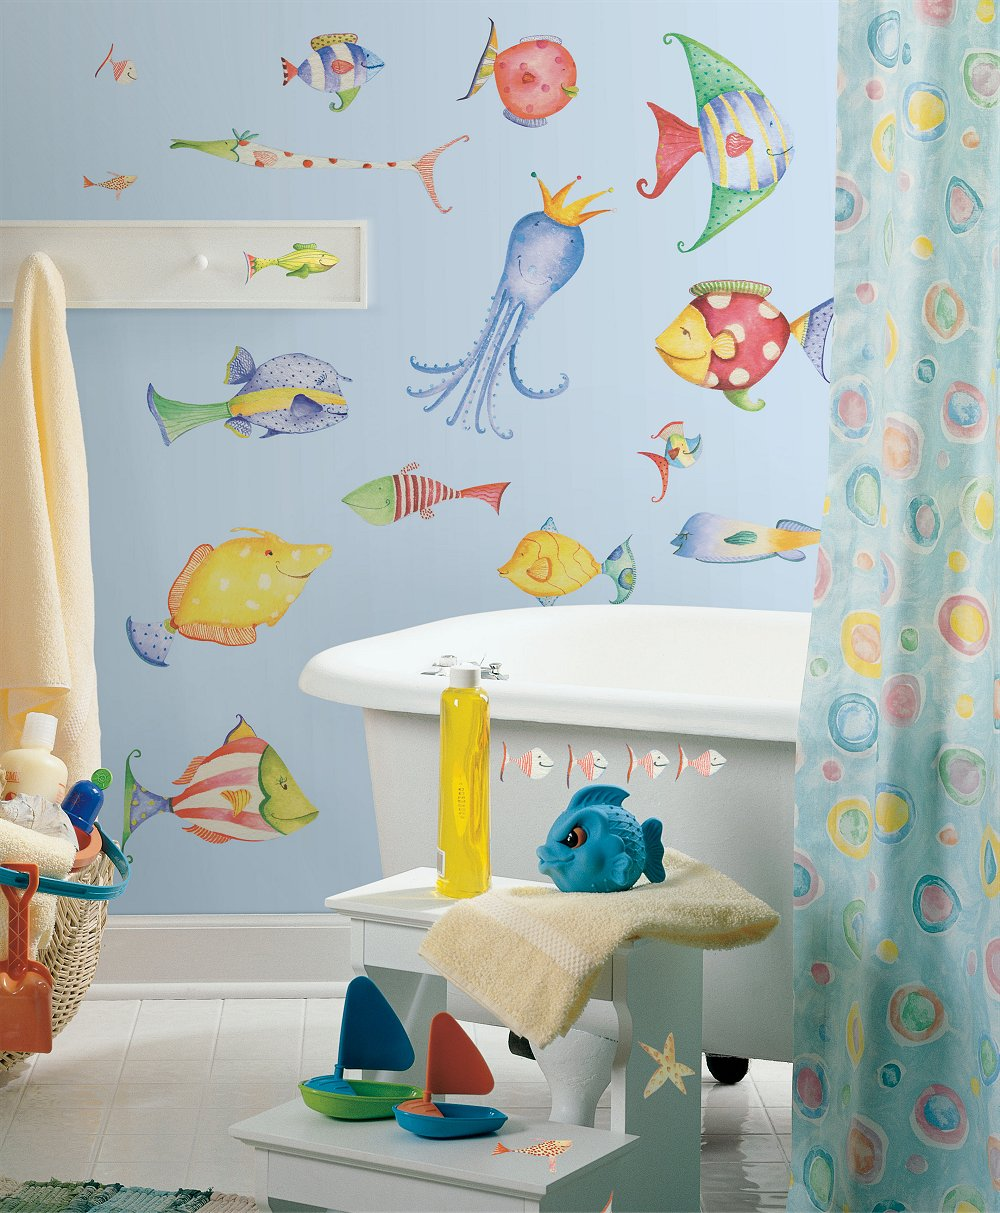 beach-themed-master-for-kids-using-white-porcelain-funny-wallpaper-cute-curtain-plastic-towel-stand-white-tub-wooden-window-unique-pendant-lamp-beach-themed-bathroom-ideas-bathroom-fresh-beach-theme